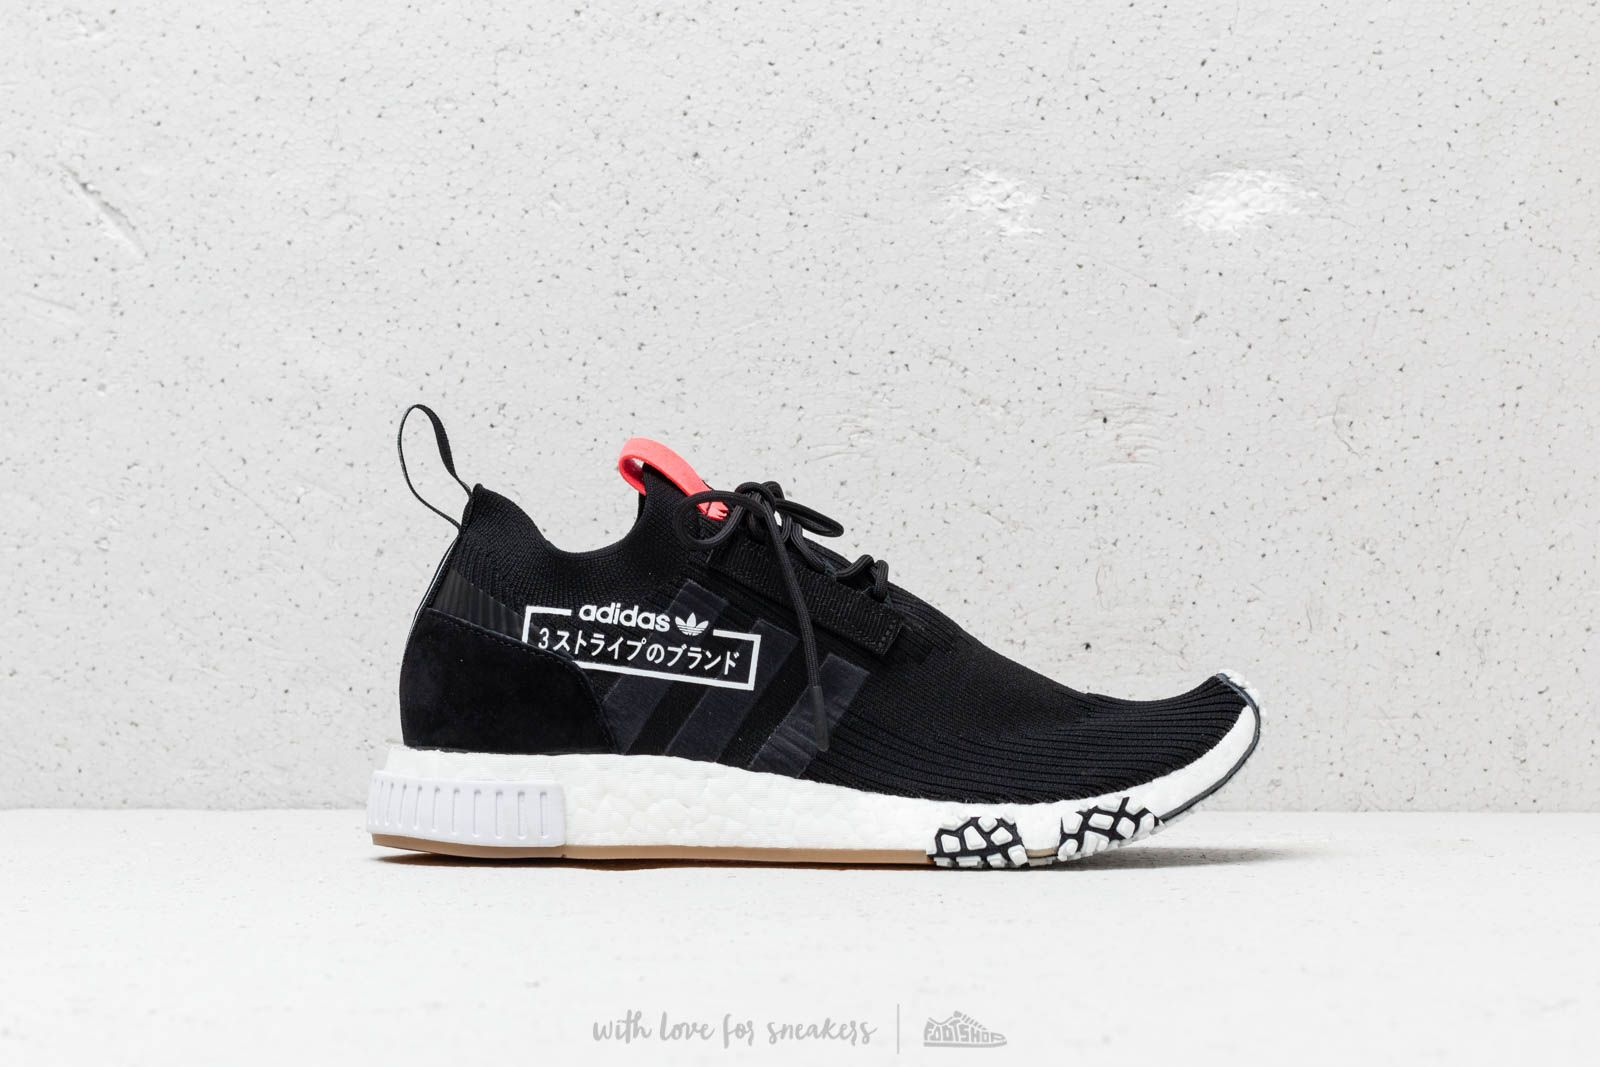 266c3386ec628 adidas NMD Racer Primeknit Core Black  Core Black  Flash Red at a great  price